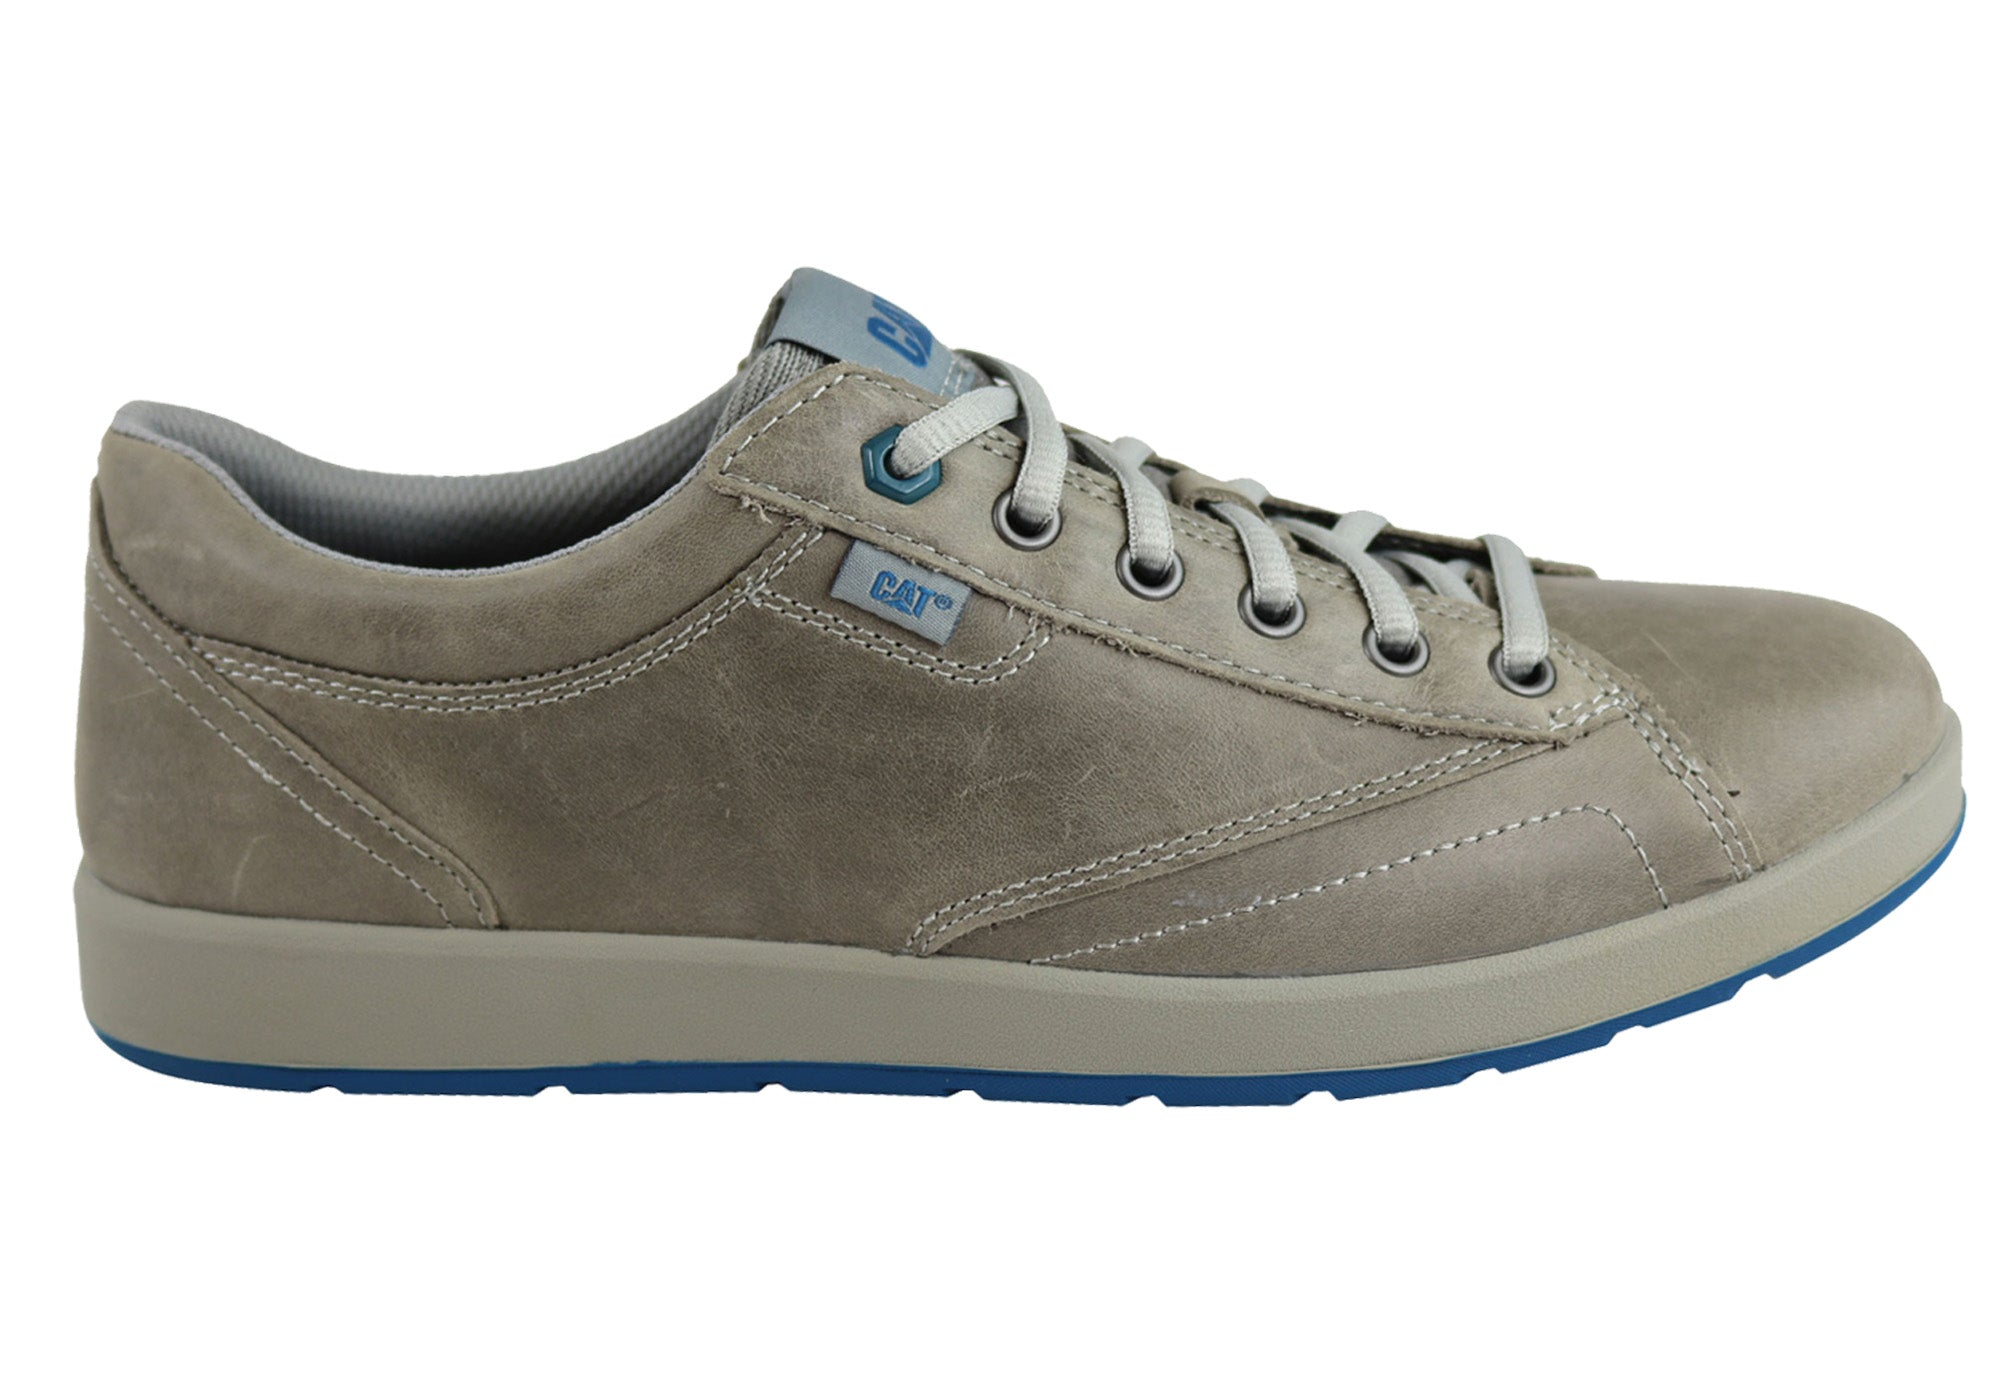 76e0f73dafef Caterpillar Abid Mens Casual Comfort Lace Up Wide Fit Shoes